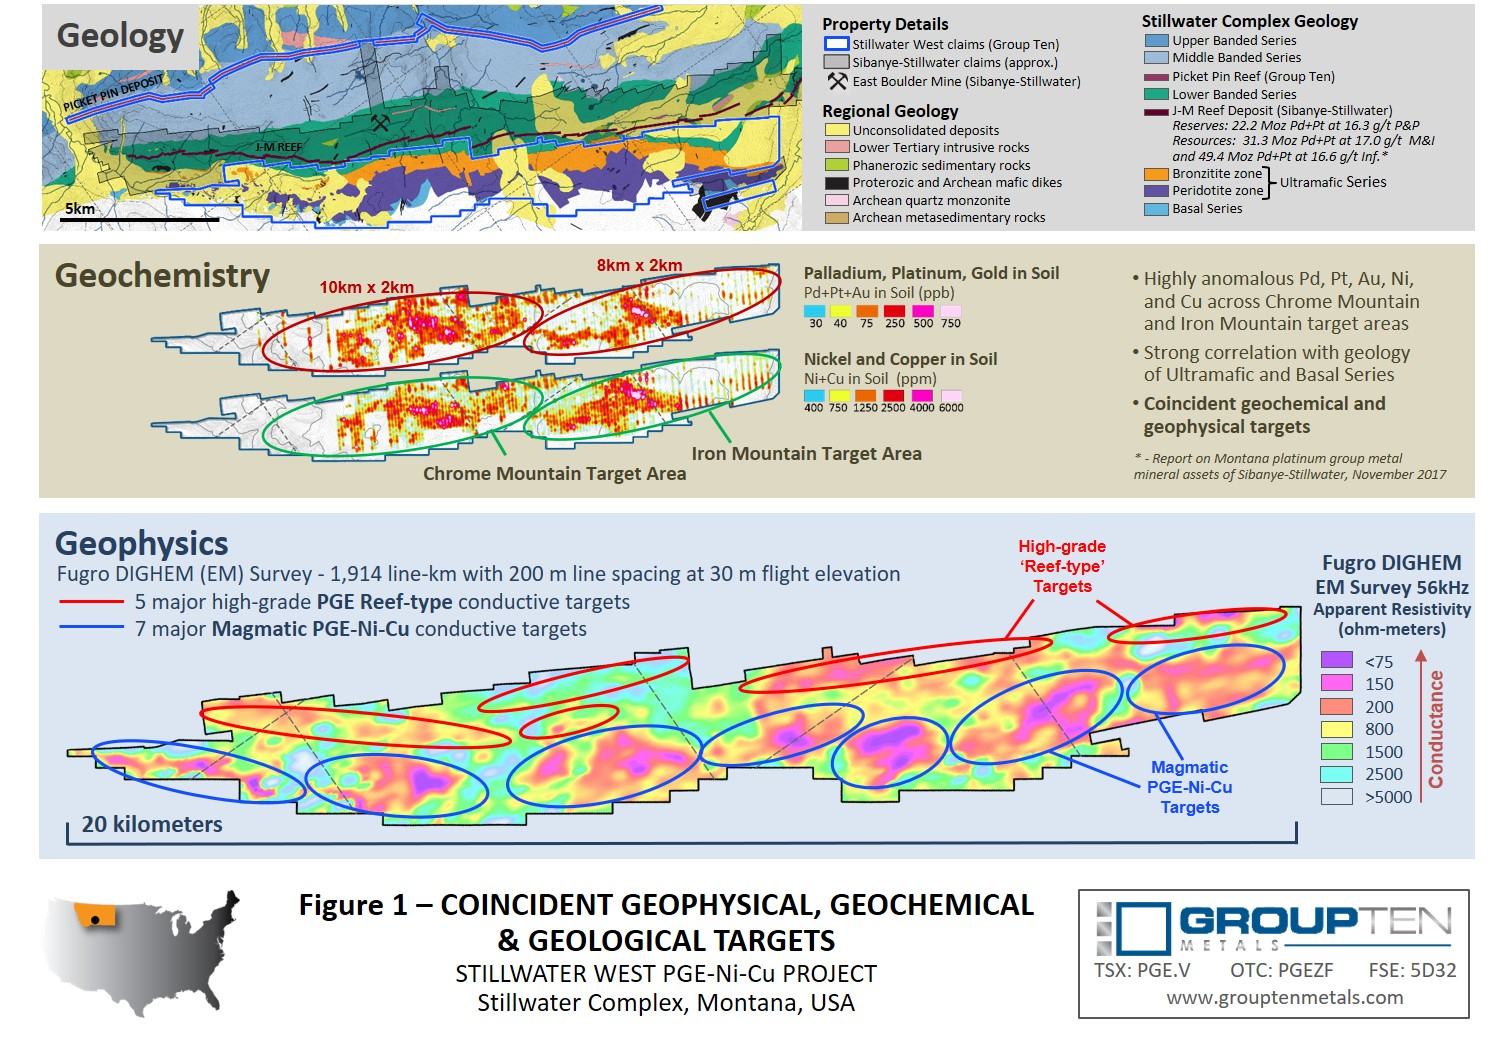 Figure 1 - Coincident Geophysical, Geochemistry & Geological Targets